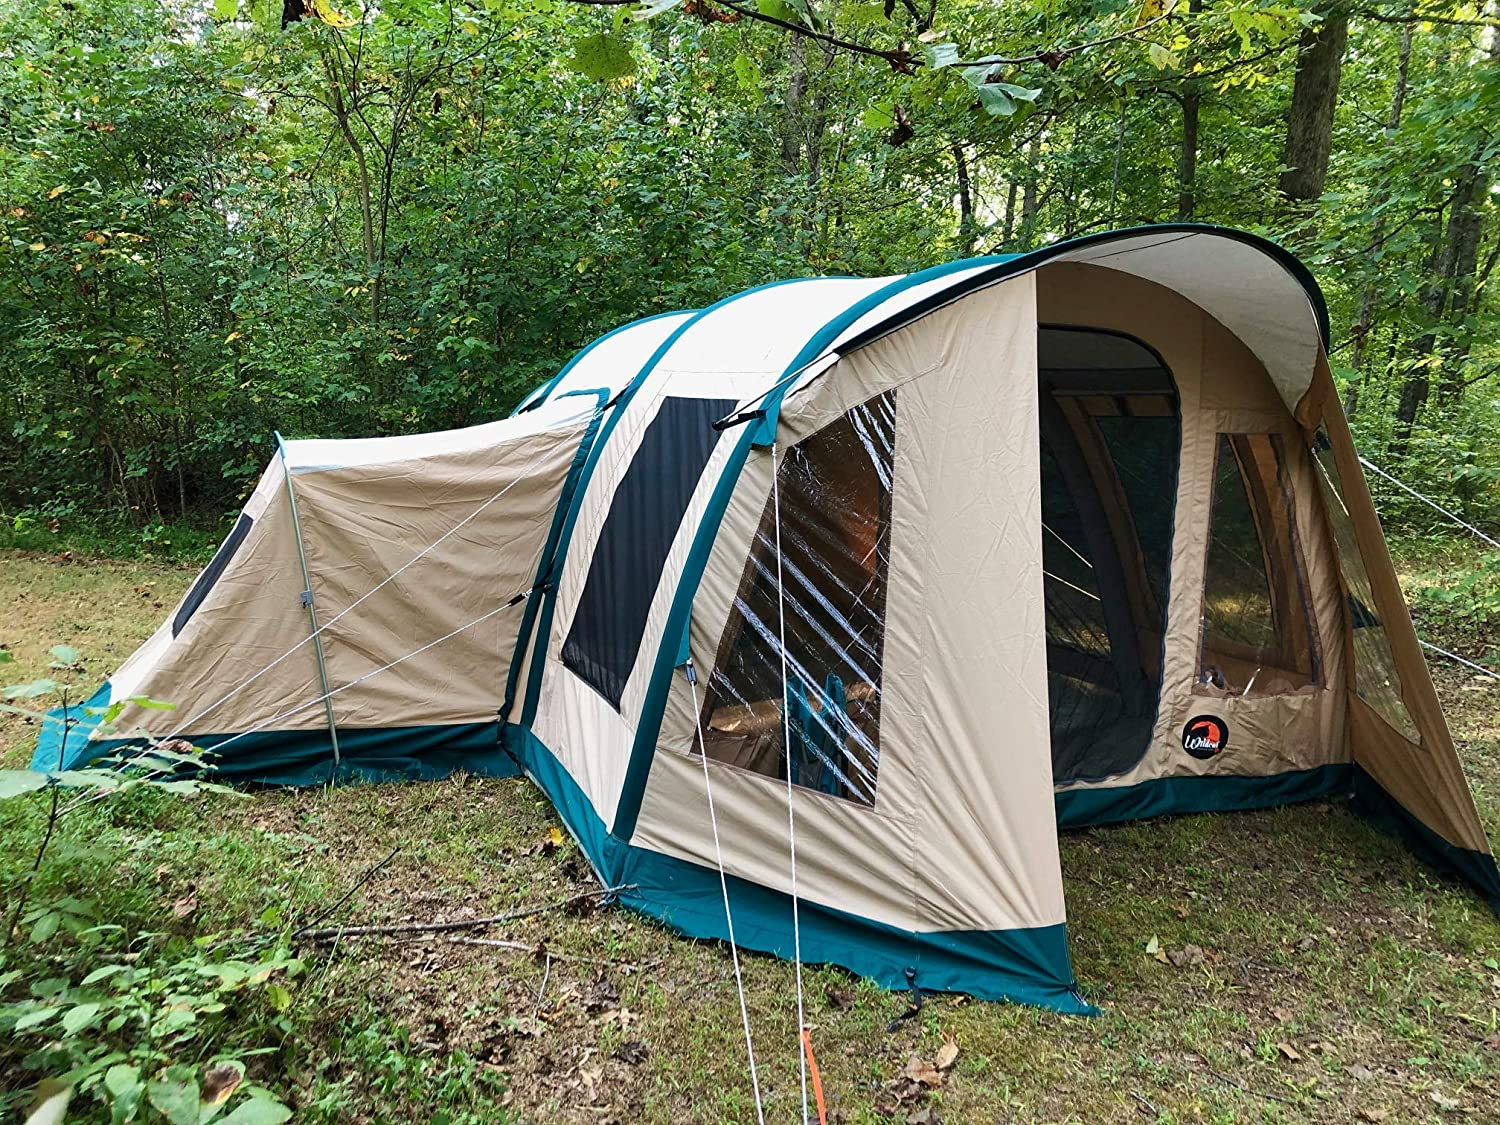 Wildcat Outdoor Gear Premium Inflatable Family Camping Tent 100 Waterproof Sleeps 4-10 Loaded with Features Sets Up in Minutes Lynx 640